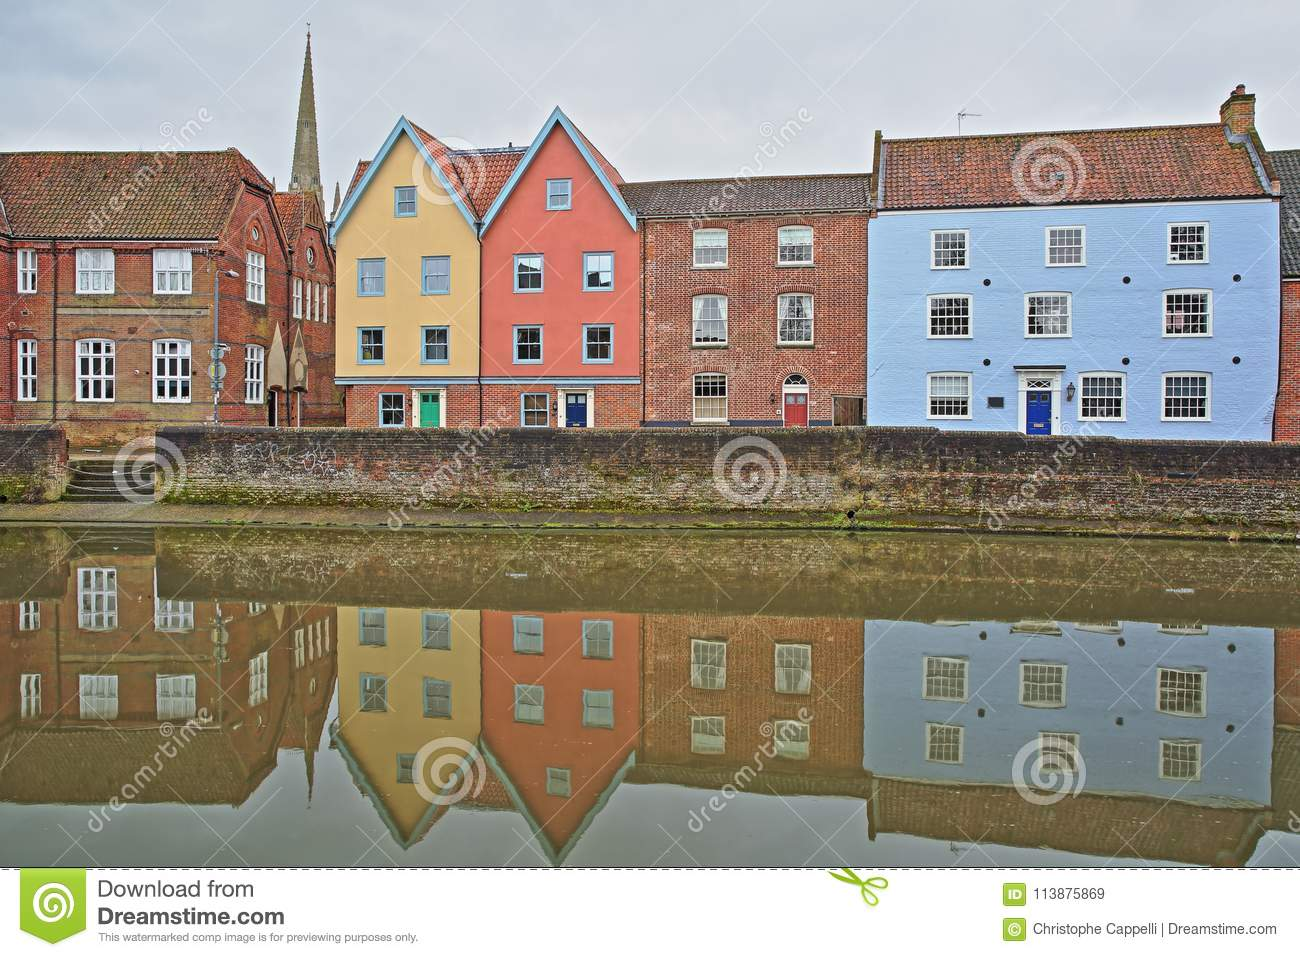 The riverside river Wensum with reflections of colorful houses and the tower and spire of the Cathedral